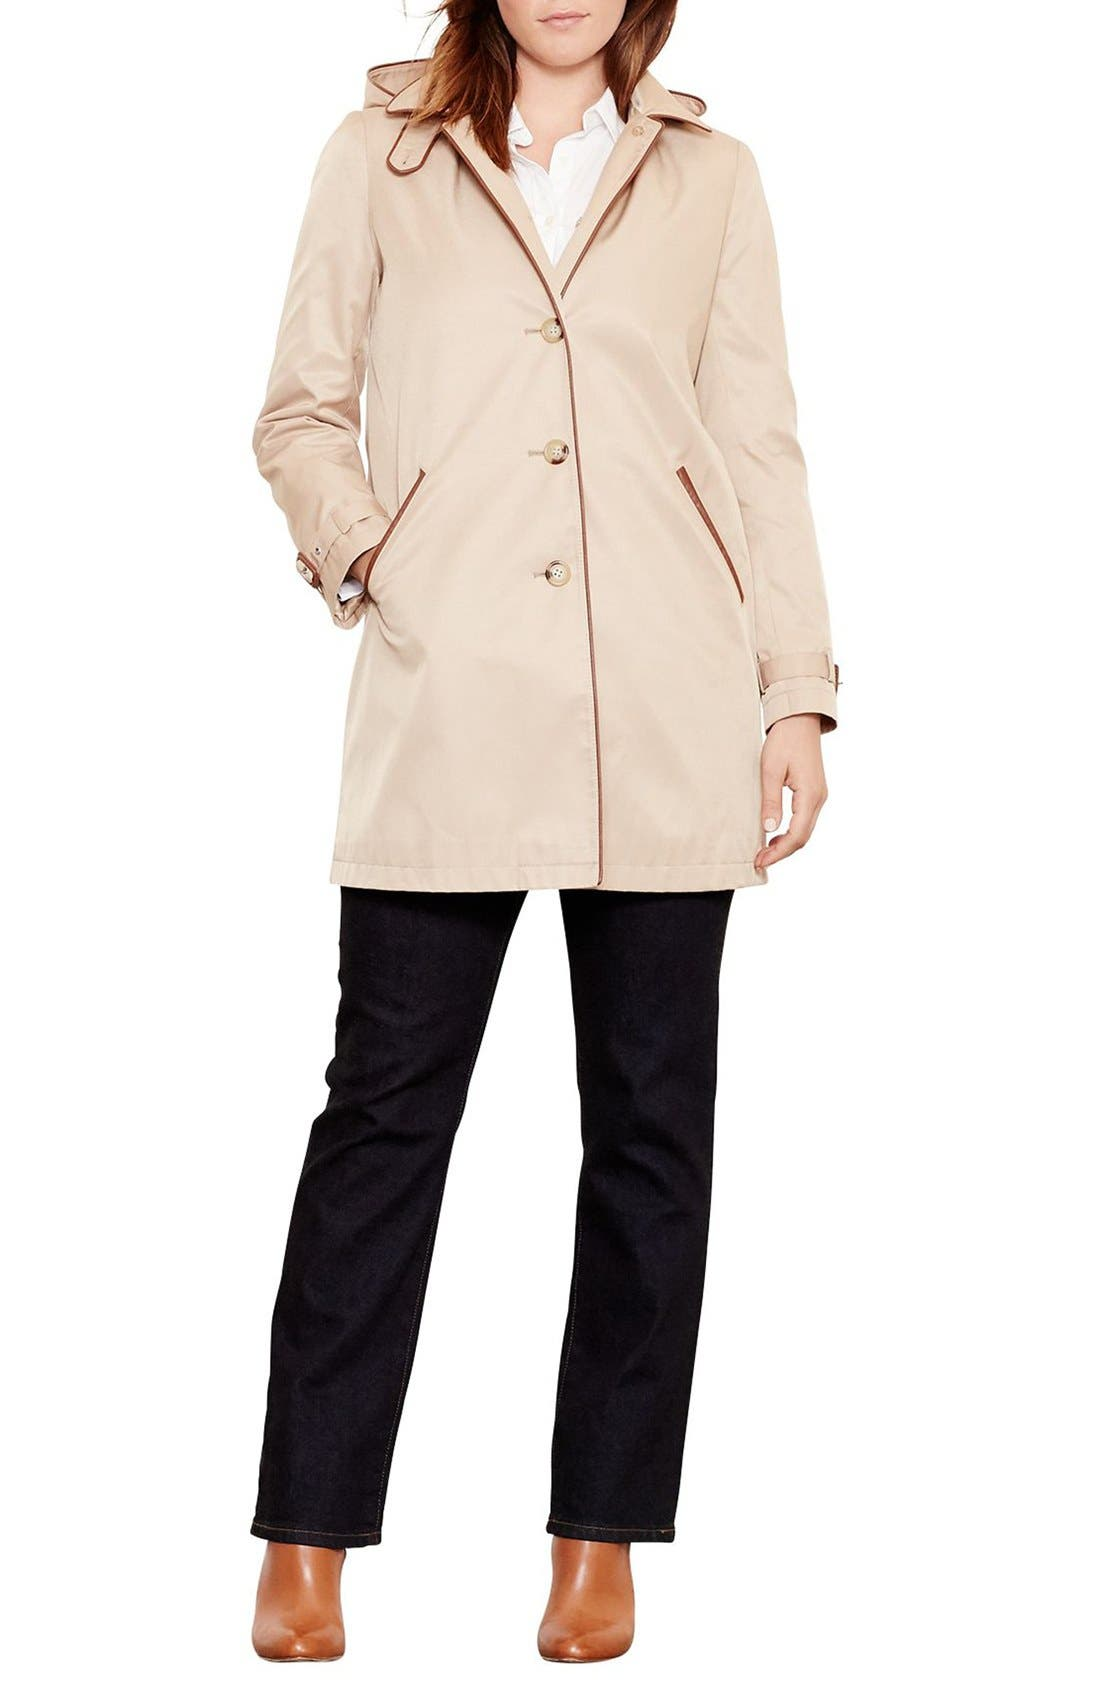 Lauren Ralph Lauren Faux Leather Trim Raincoat (Plus Size)